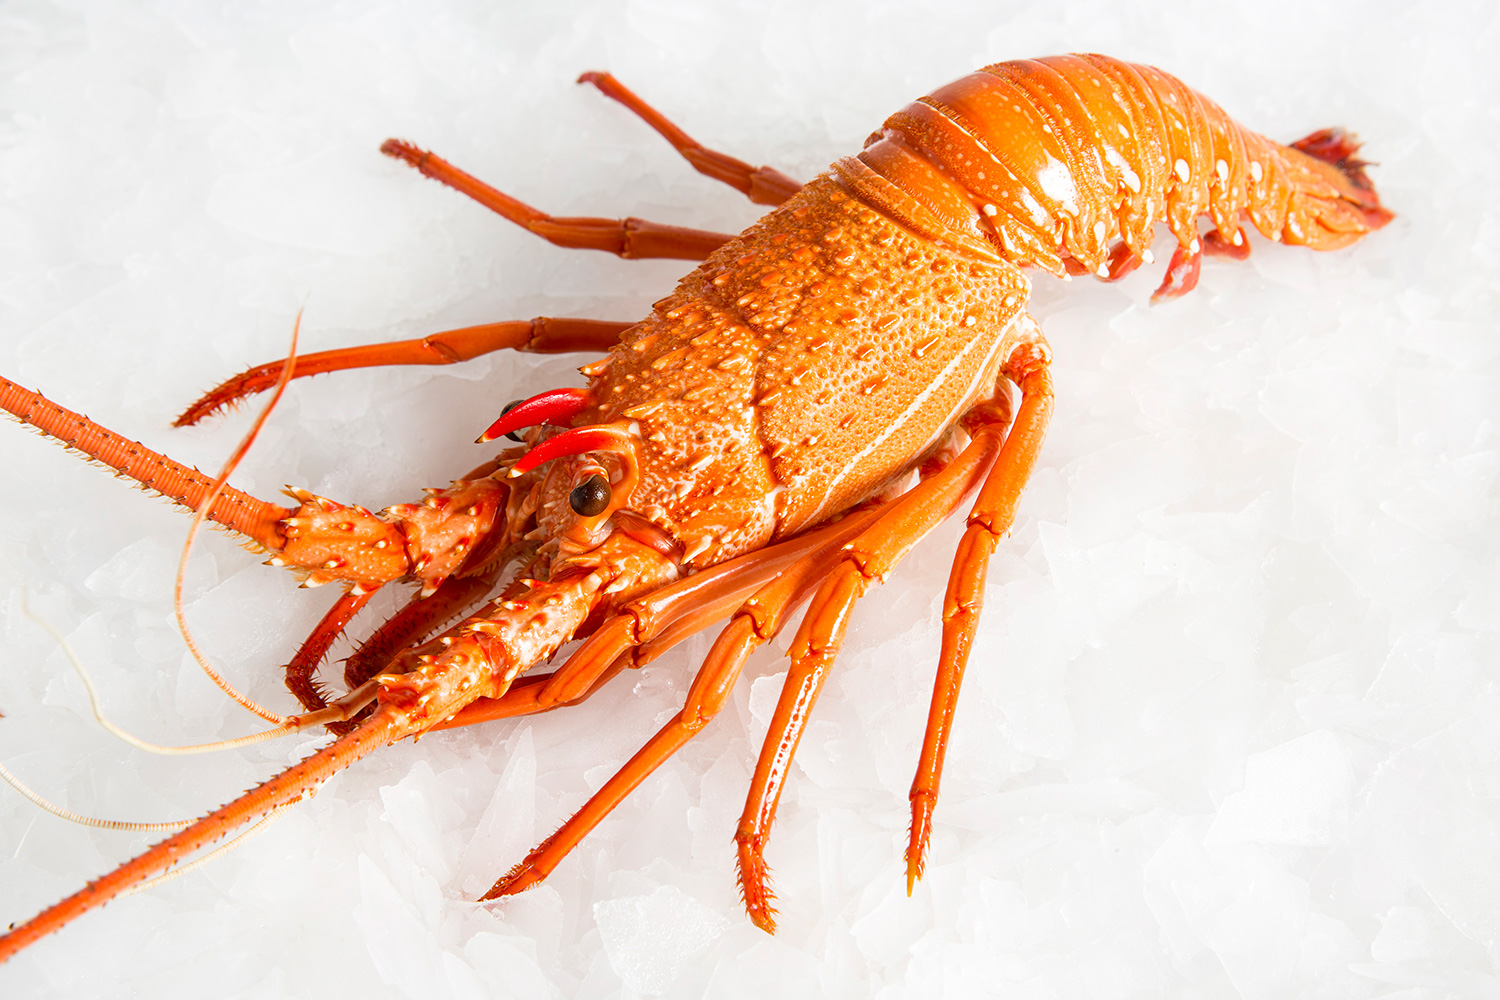 Indonesia Lobster Supplier, Lobster Farming, Live lobster supplier  indonesia, Lobster Nutrition: Lobster Species and Characteristic